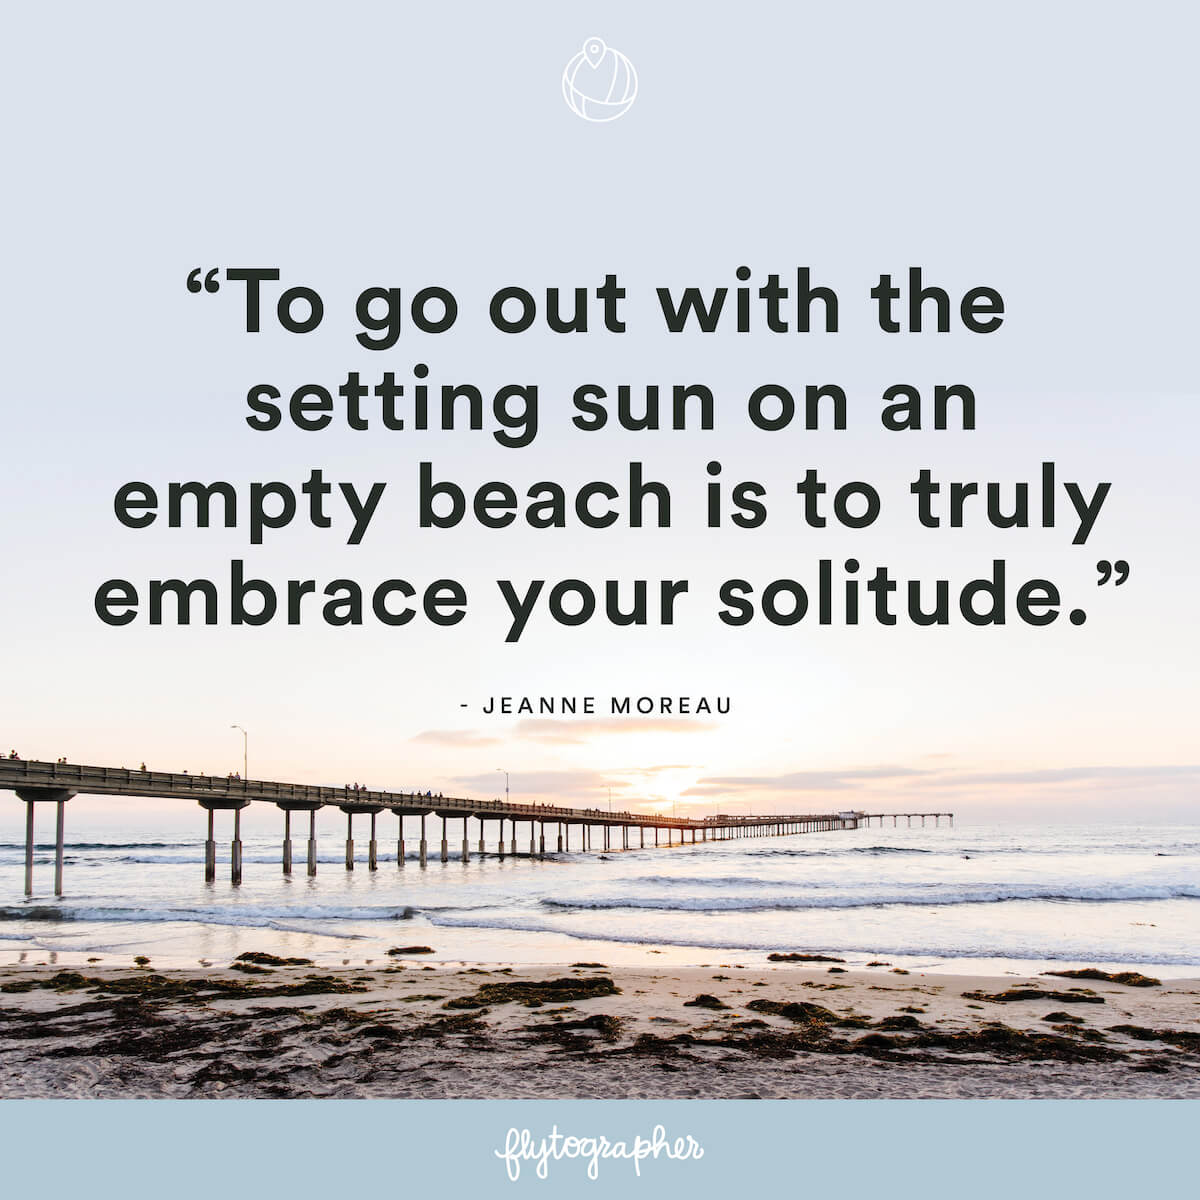 "Travel quote: ""To go out with the setting sun on an empty beach is to truly embrace your solitude."" - Jeanne Moreau"